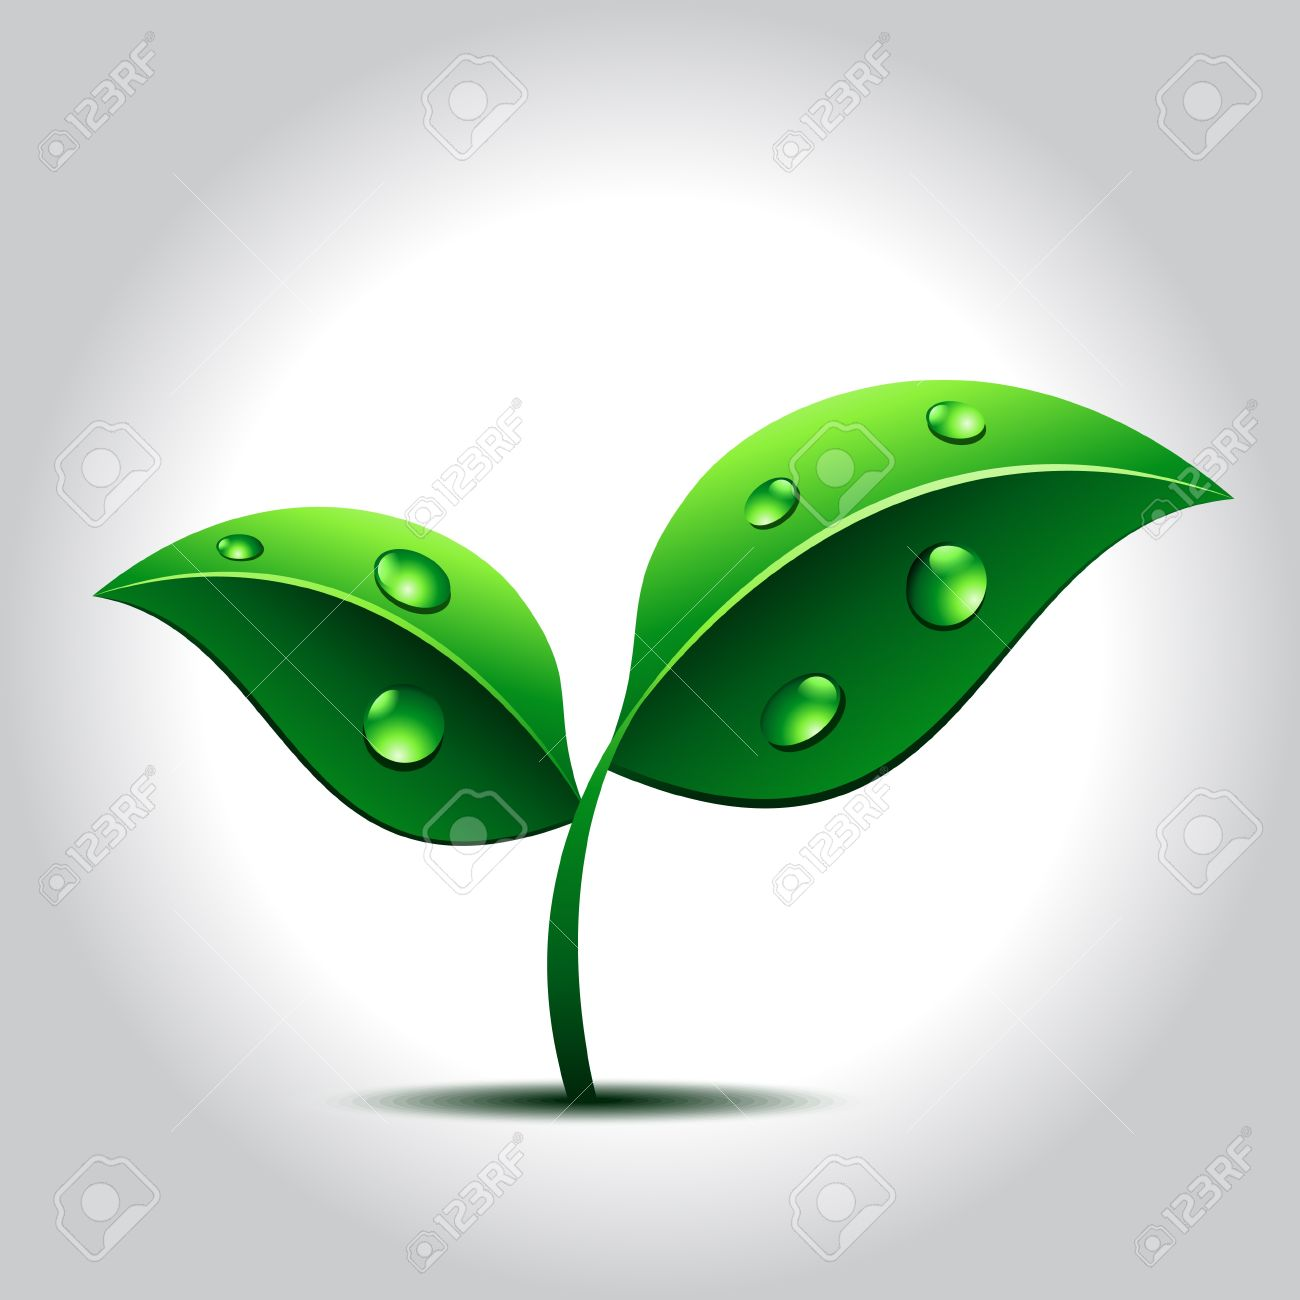 Vector Green Plant With Water Drops On Leaves Royalty Free.